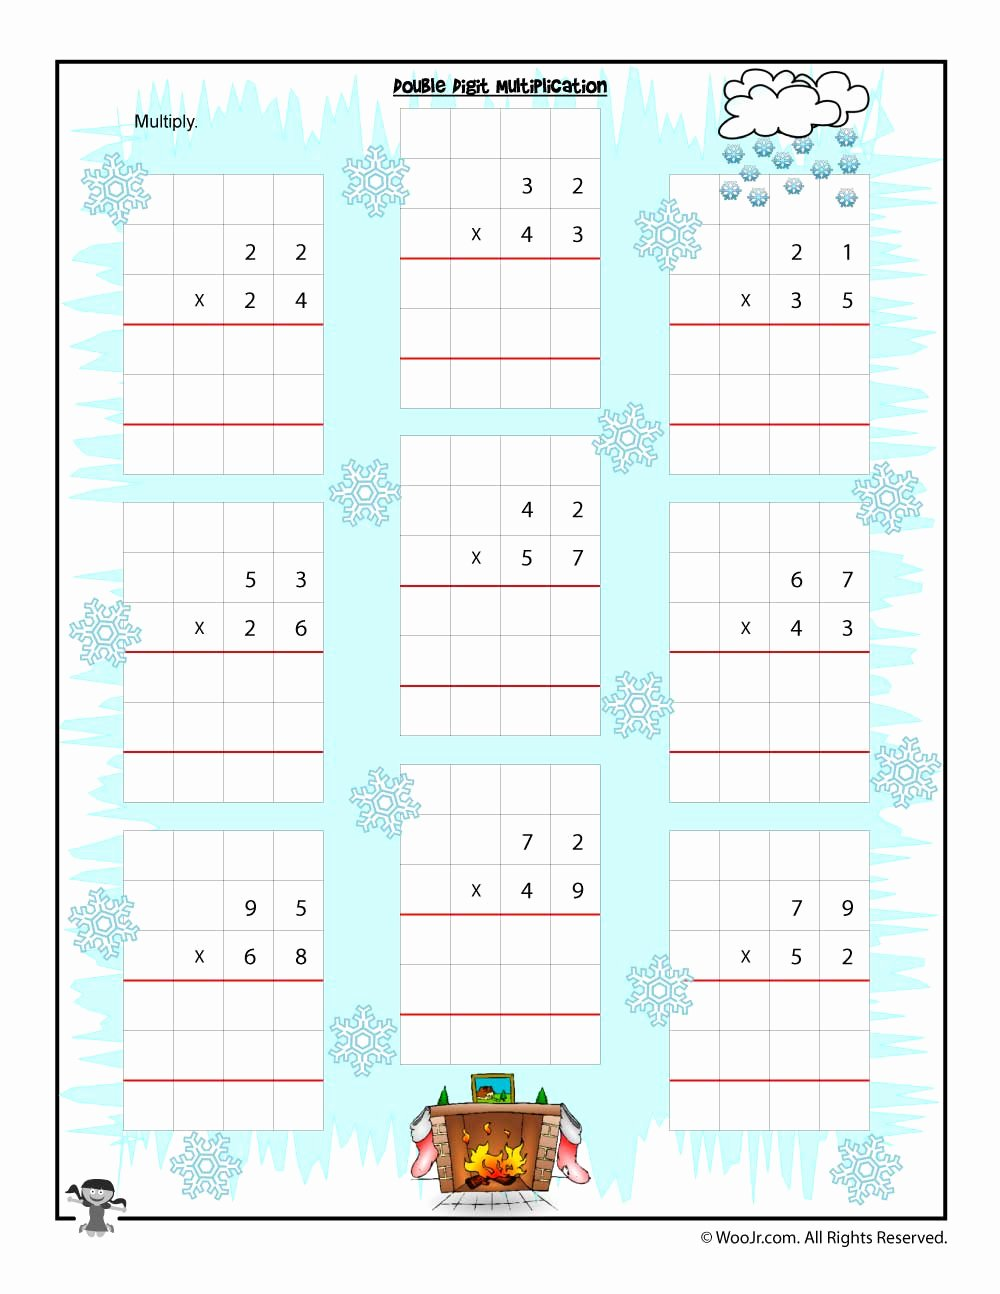 Multiplication Worksheets 2 Digit by 2 Digit top 2 Digit Multiplication Christmas Worksheets First Grade